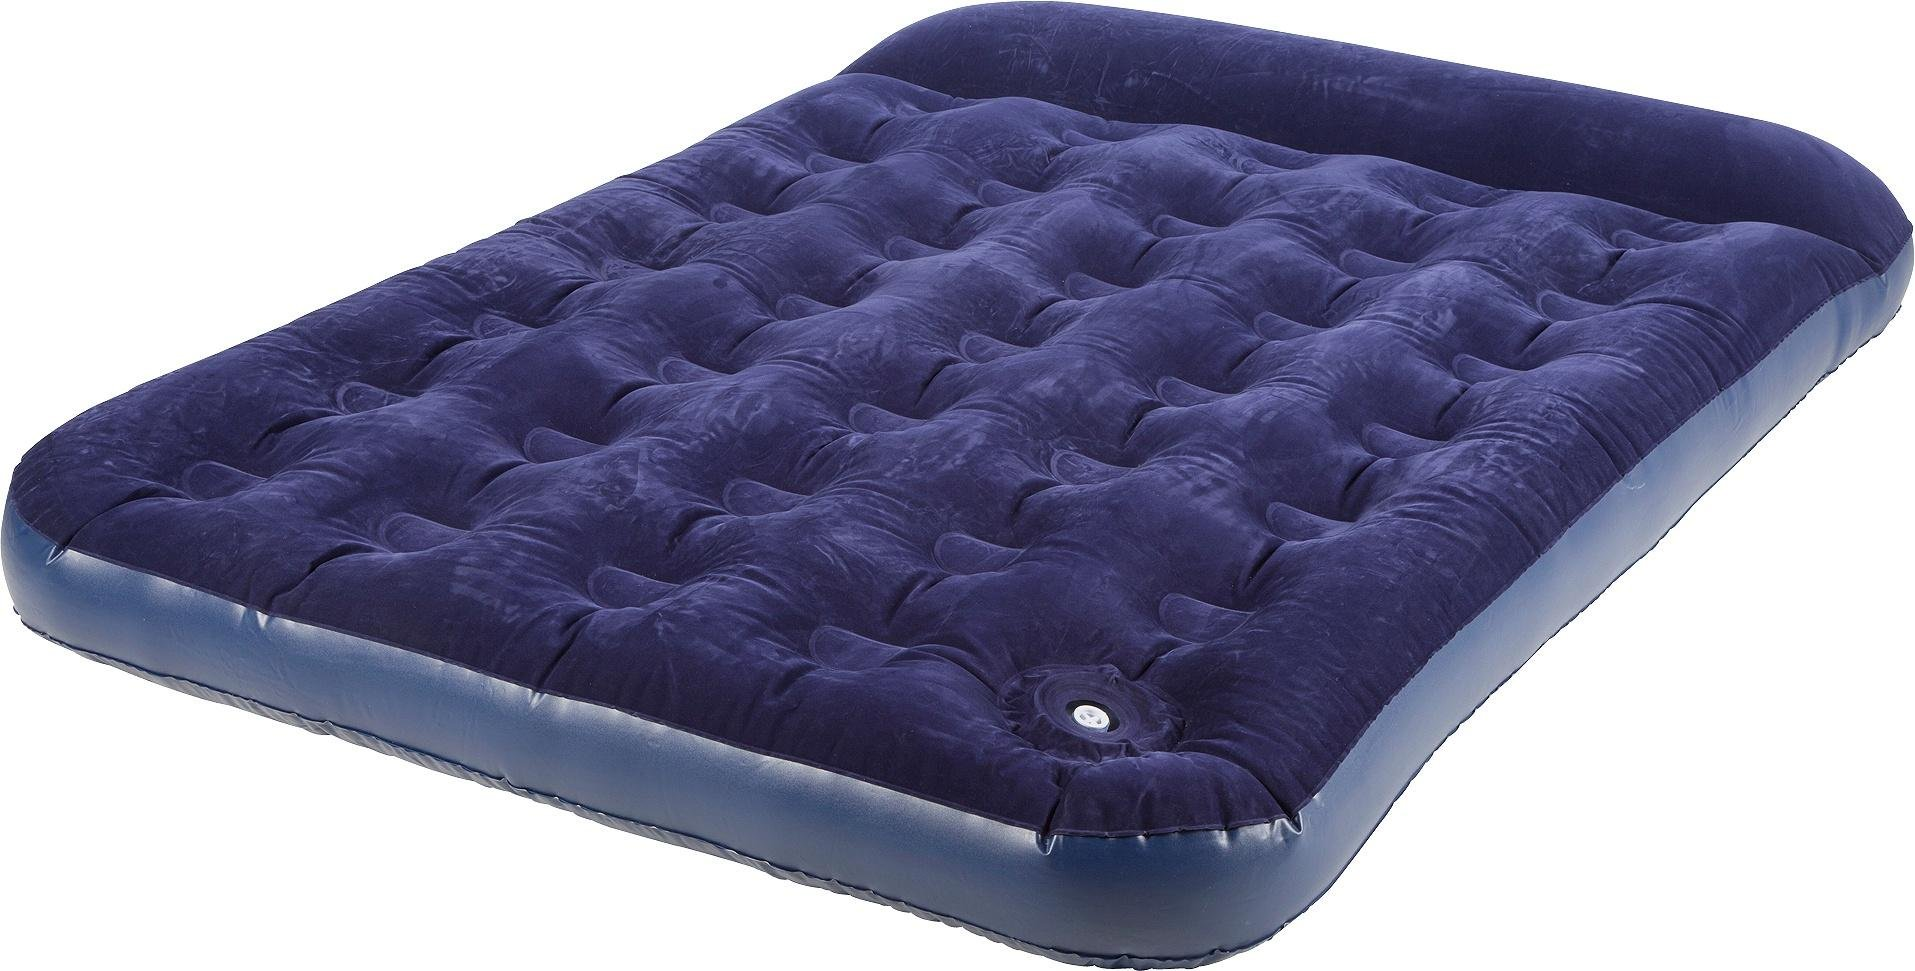 Image of Bestway - Air Bed with Built In Pump - Double